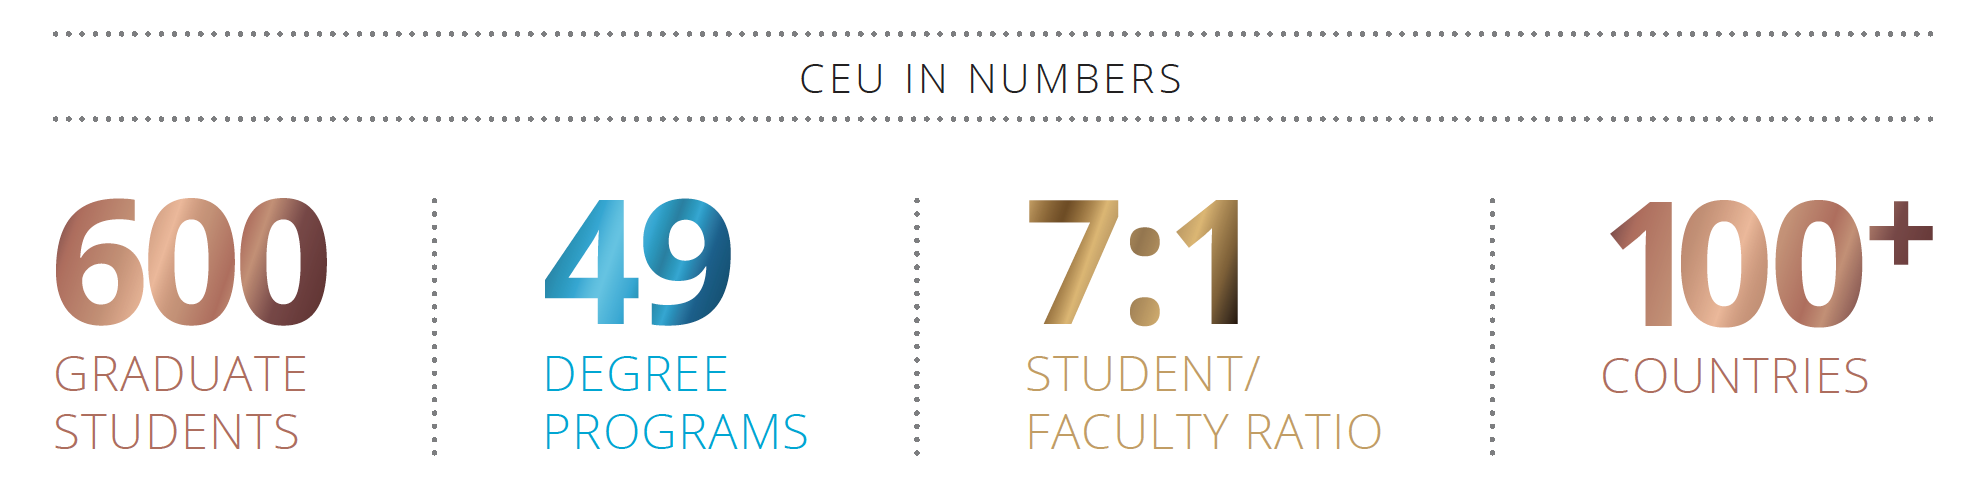 Central European University Featuring members of our global alumni network in numbers